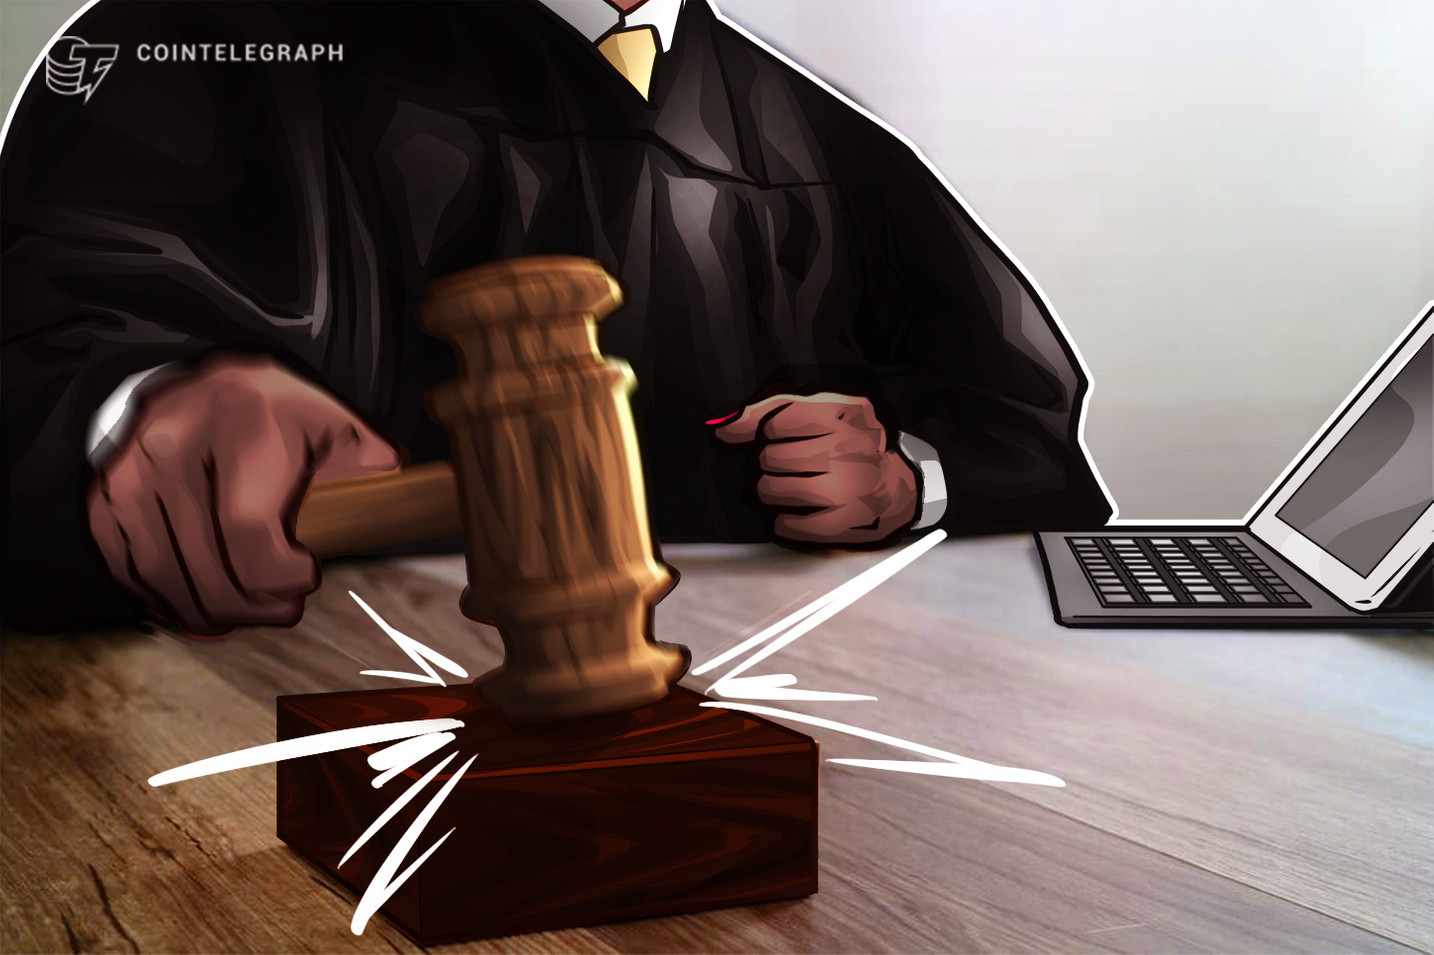 Bitfinex, Tether Formally Contest US Court Case Over Alleged $850 Million Fraud